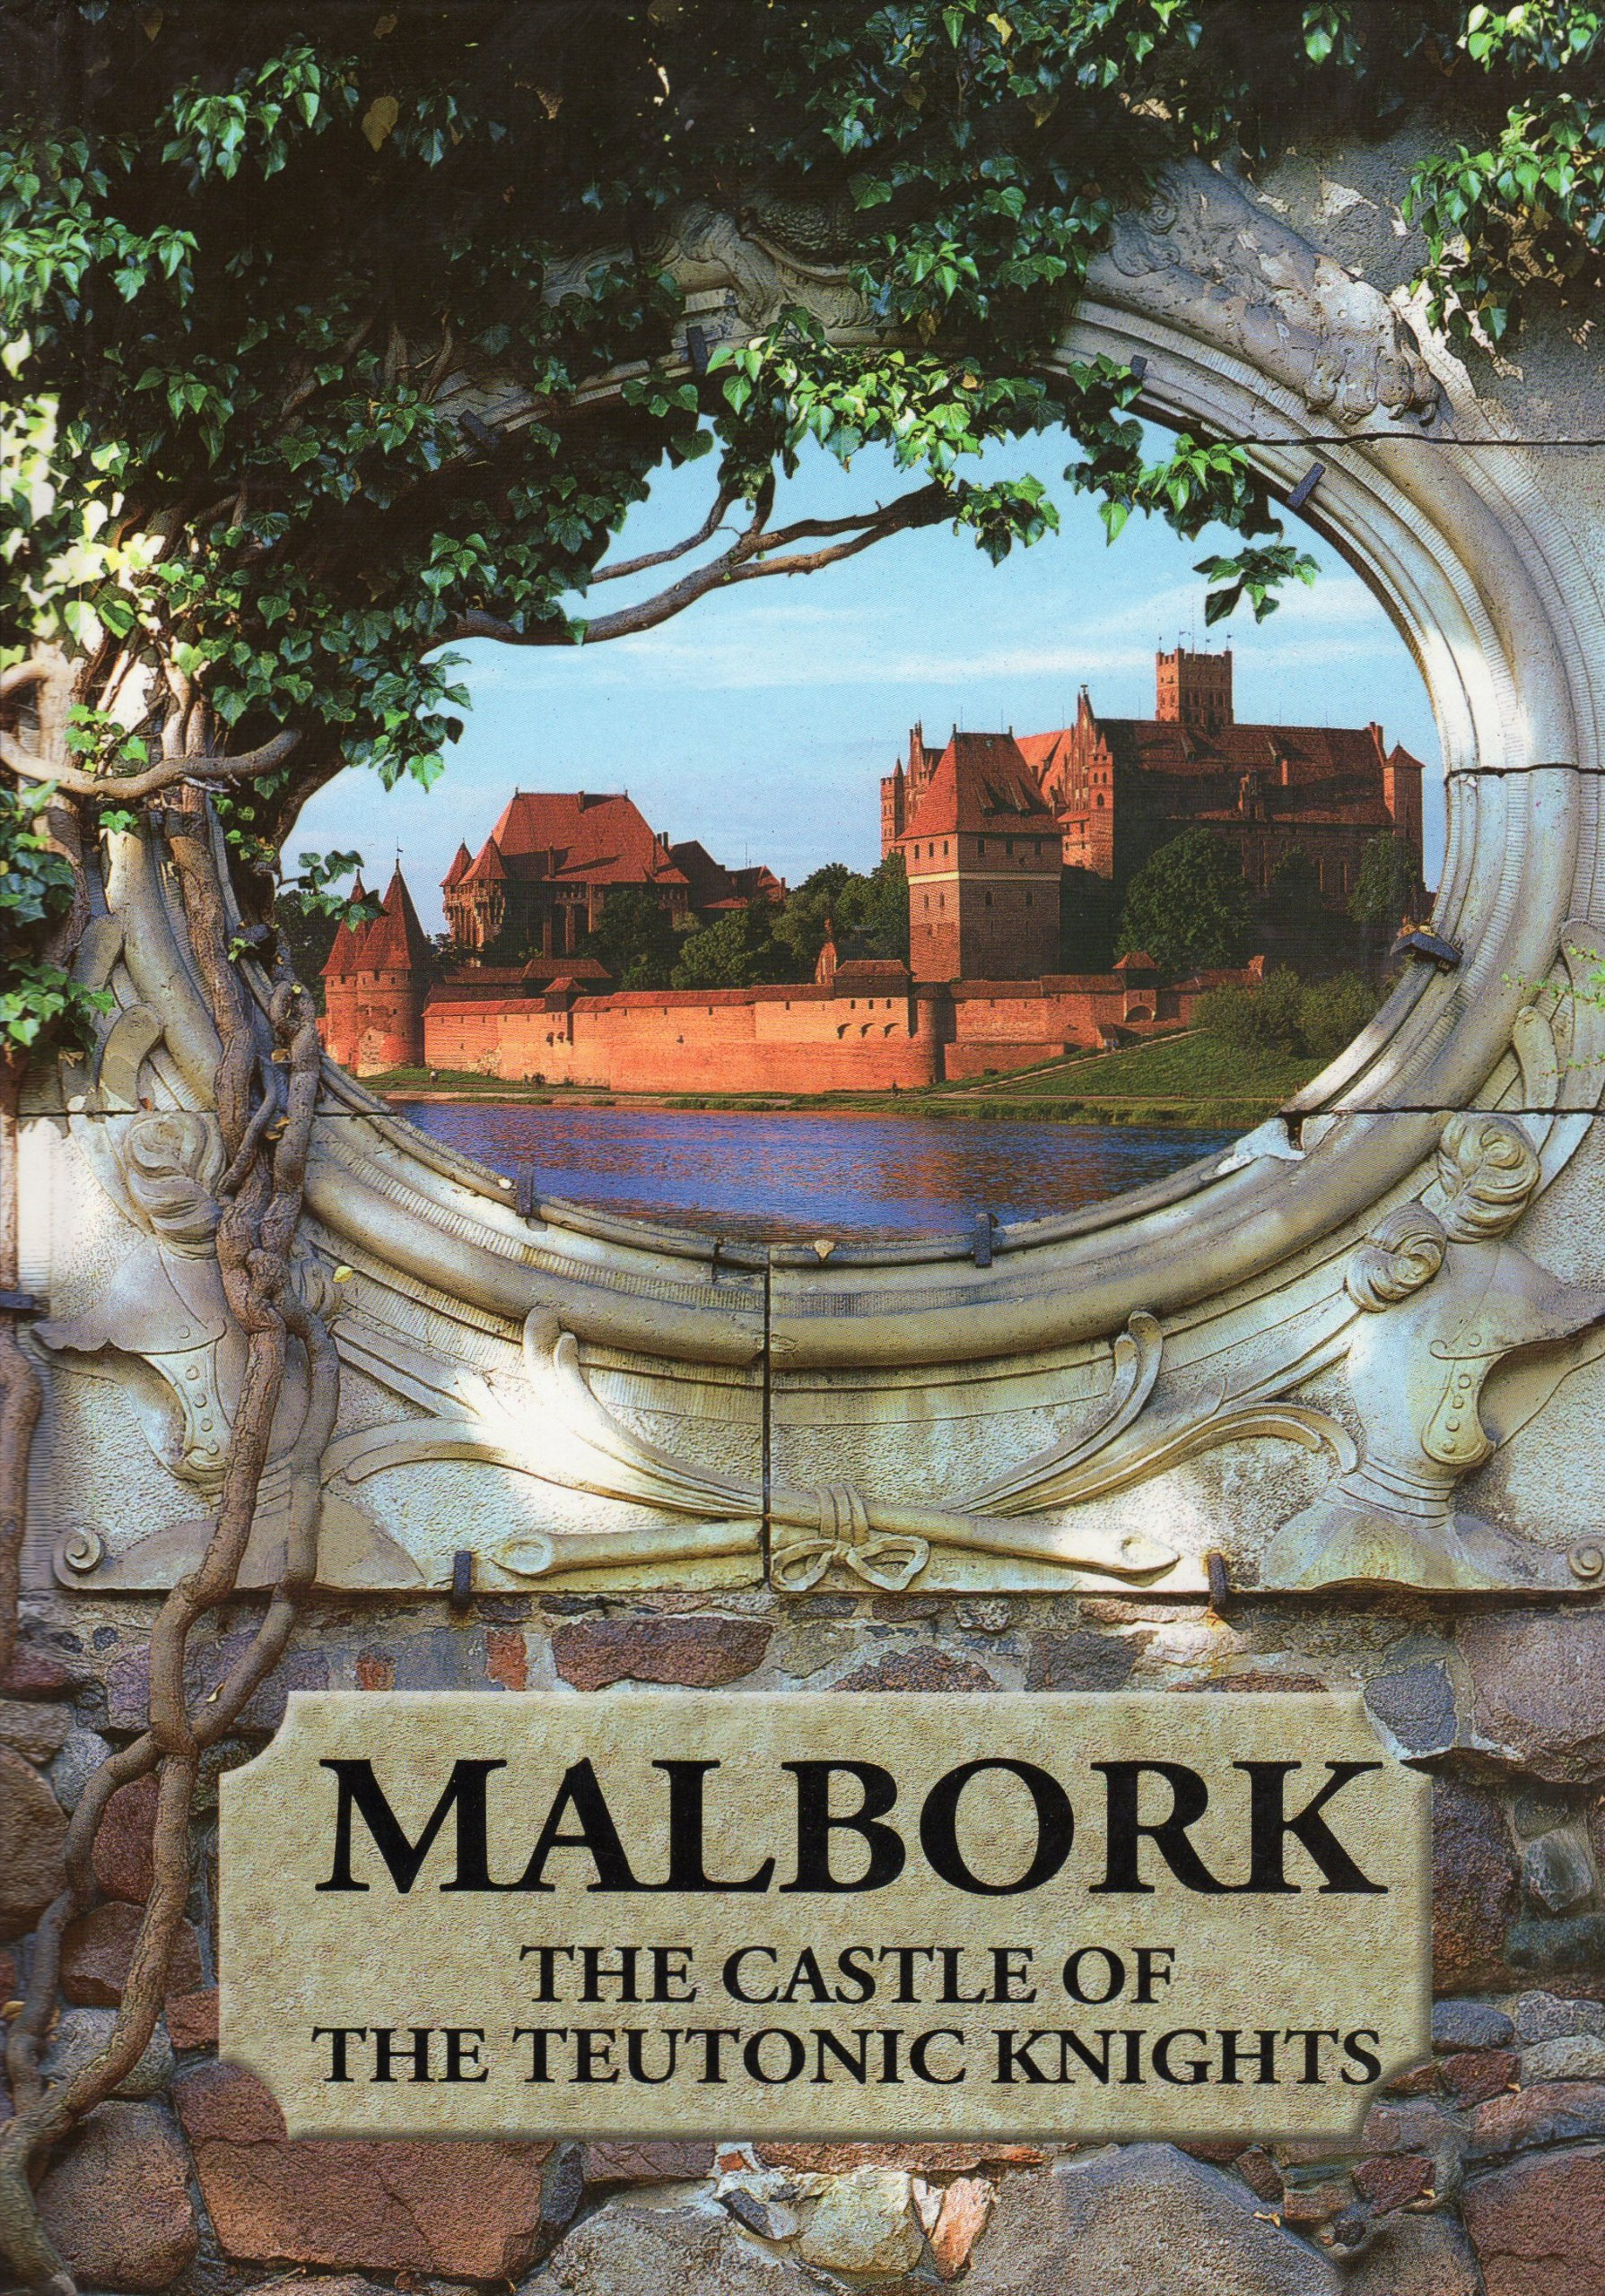 Malbork: The Castle of the Teutonic Knights